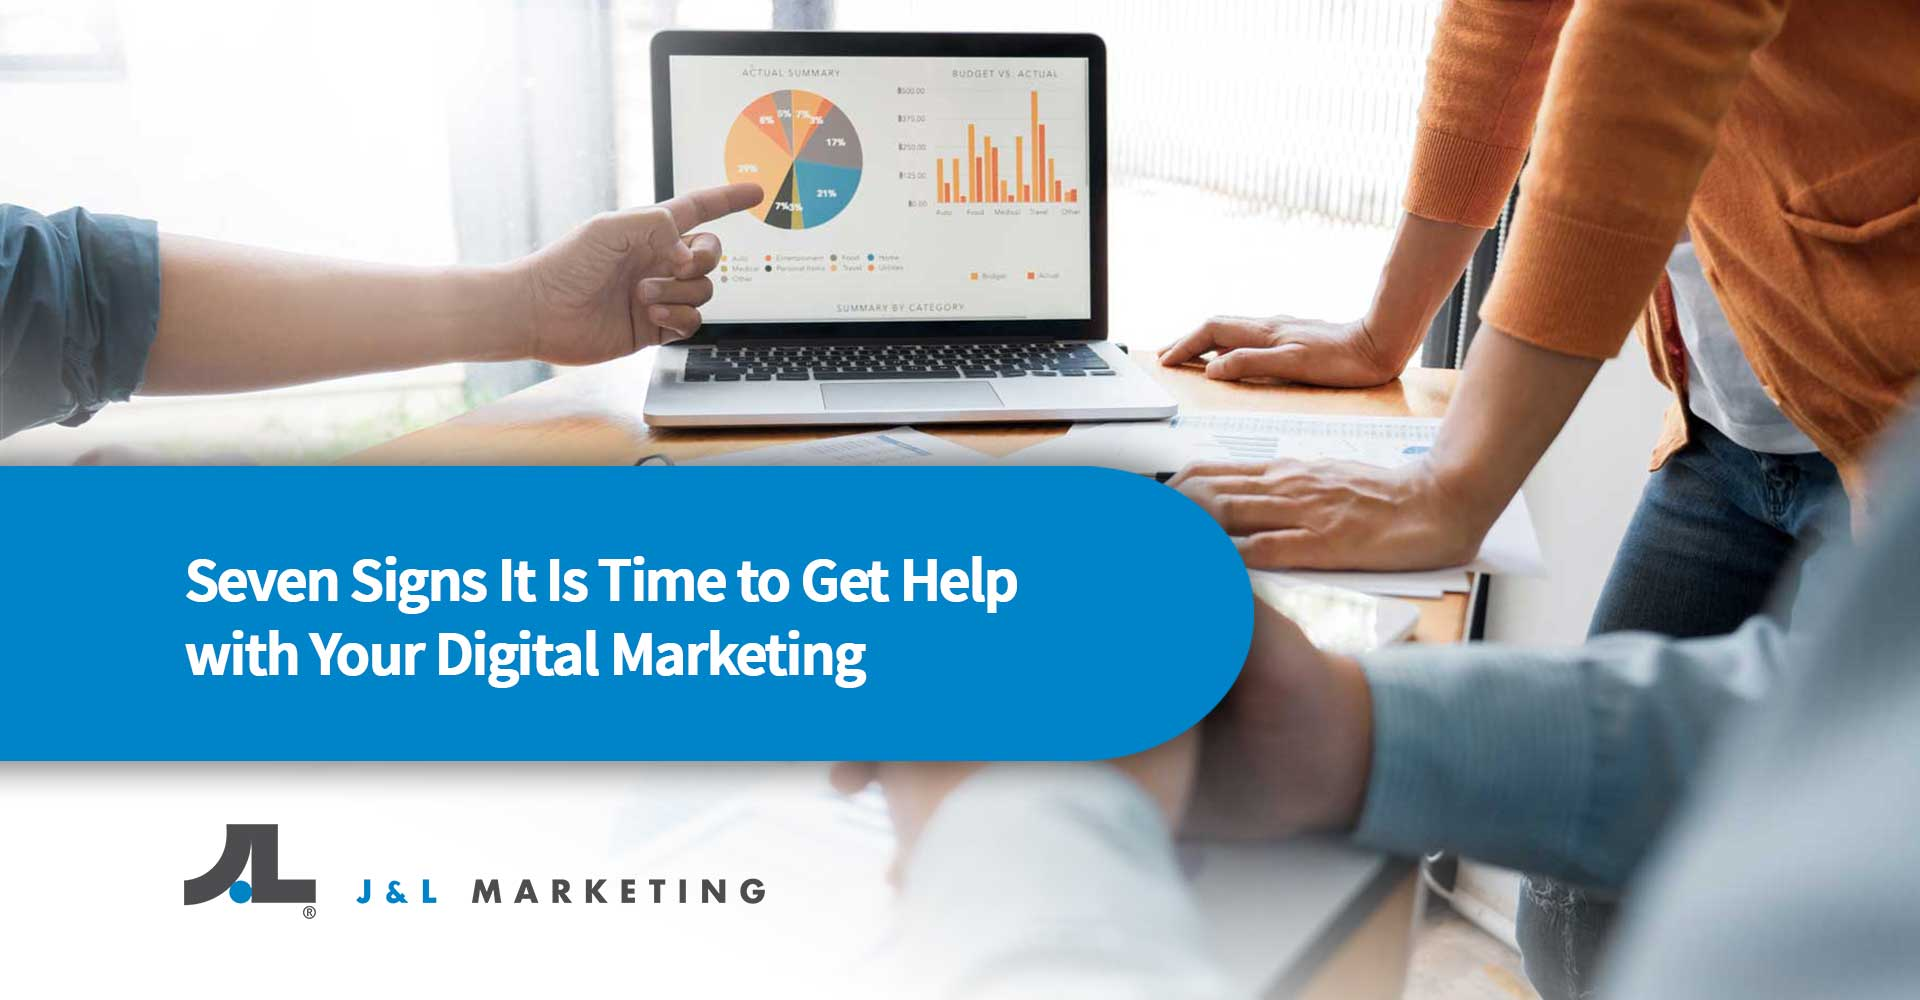 Seven-Signs-It-Is-Time-to-Get-Help-with-Your-Digital-Marketing.jpg